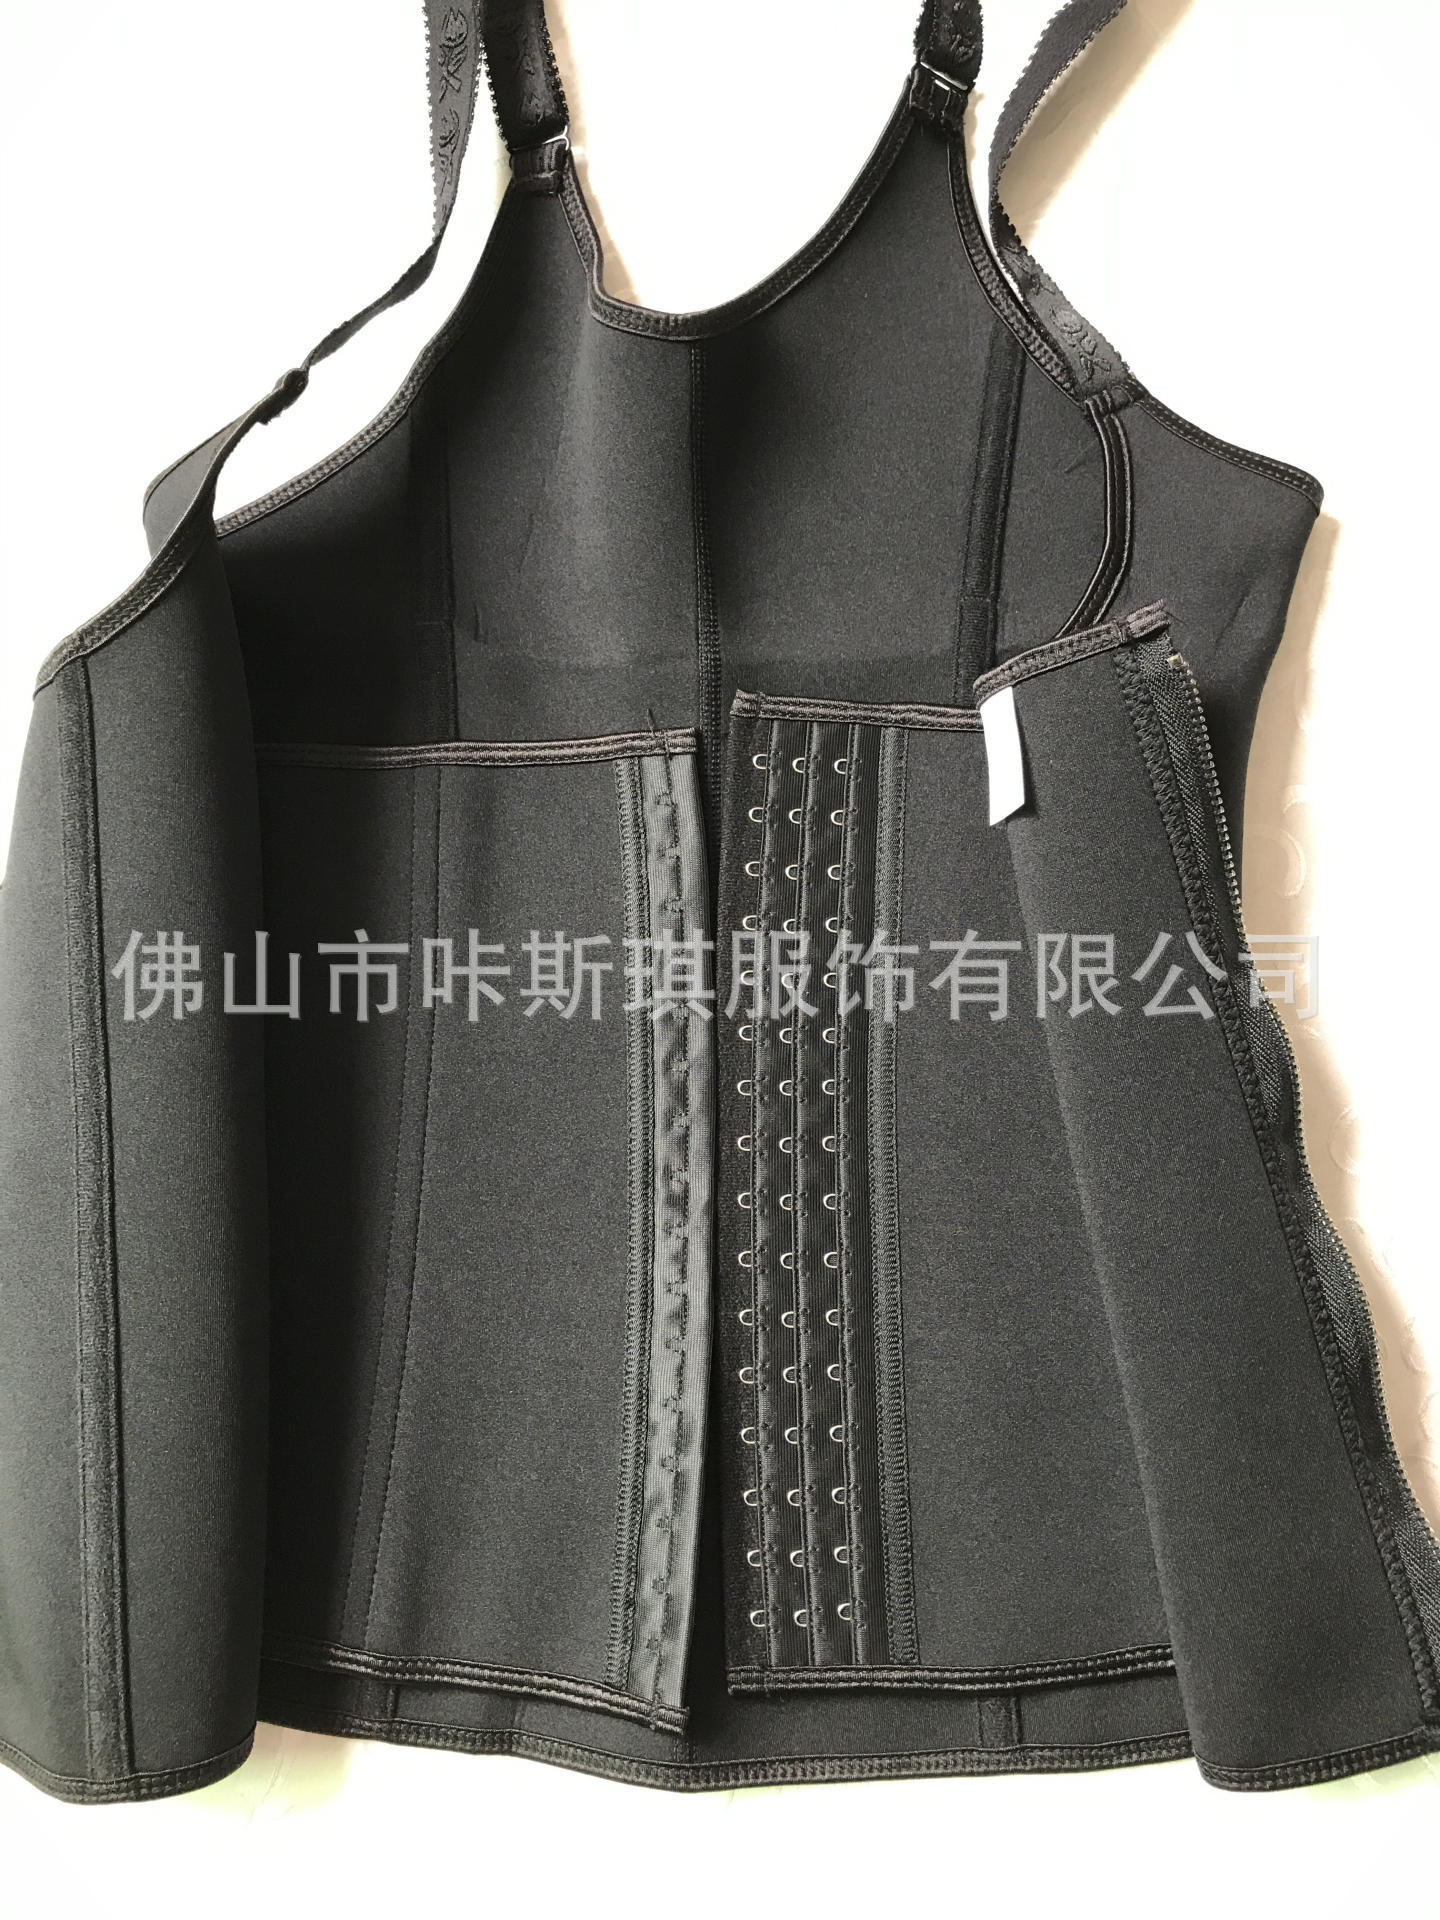 Neoprene Zipper Vest Ultra Time Sports Fitness Exercise Extreme Sweat Lady Of Corsets in Slimming Product from Beauty Health